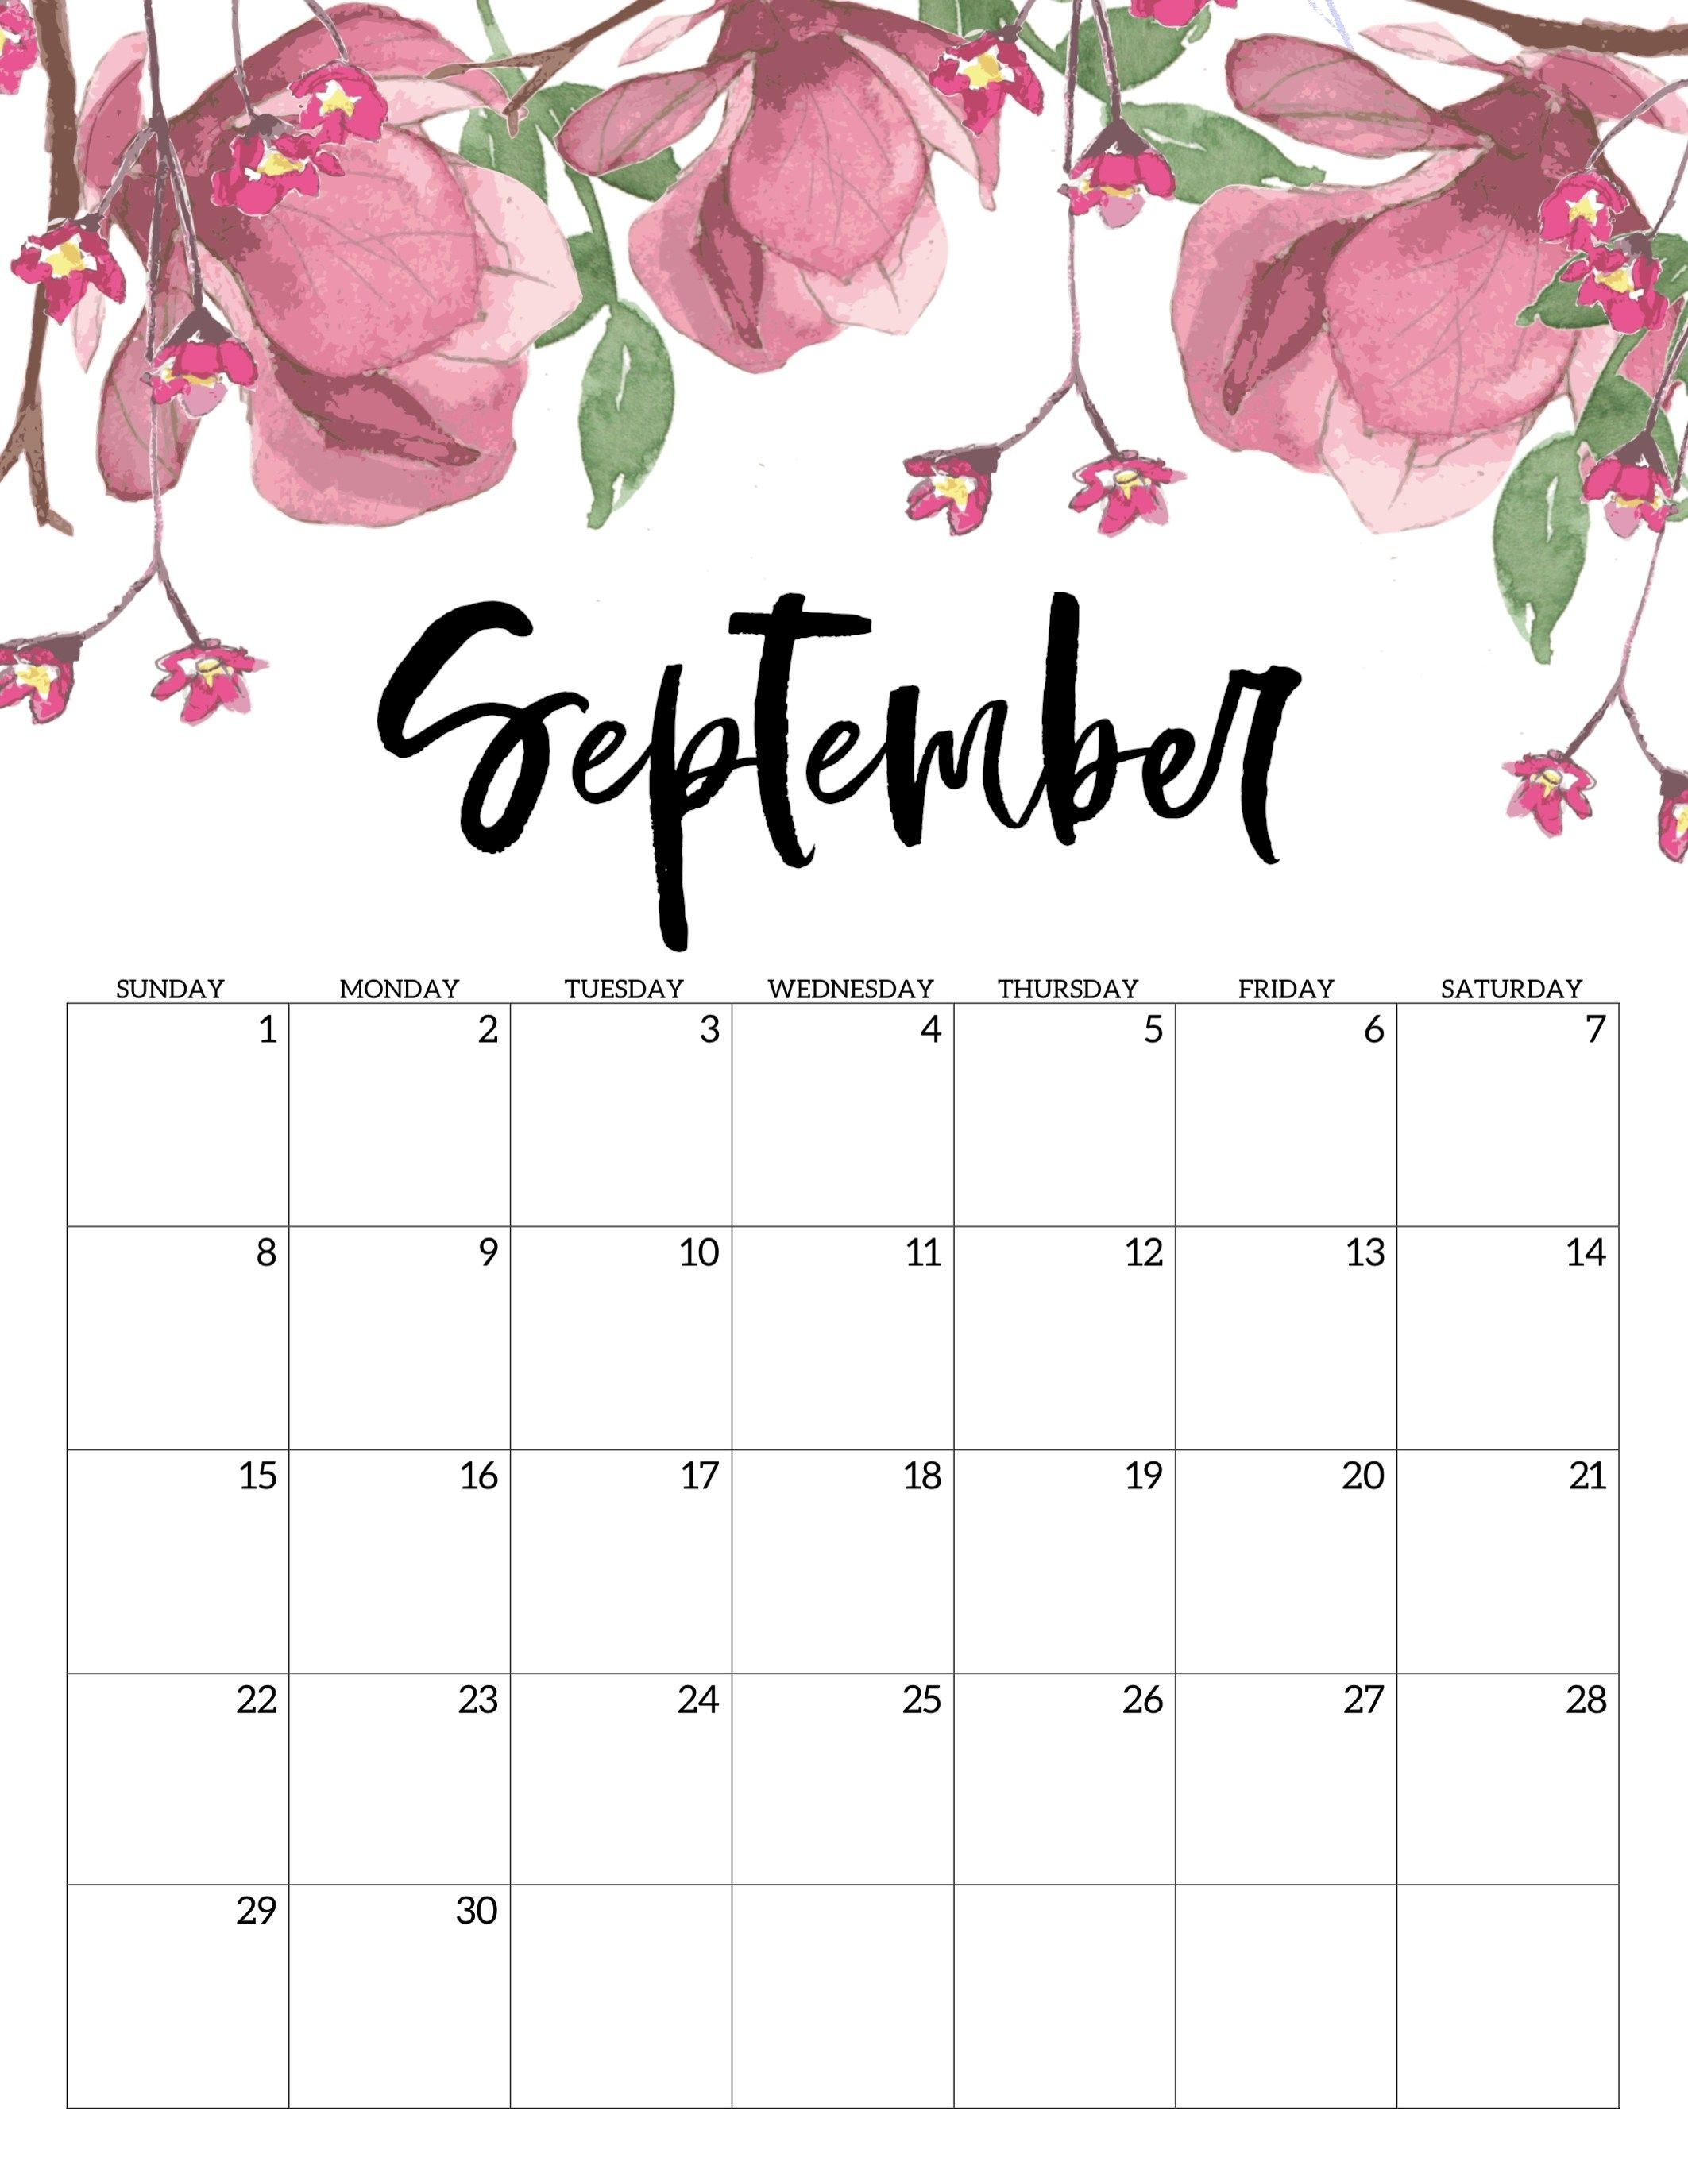 photograph regarding Calendars Free Printable called Absolutely free Printable Calendar 2019 - Floral - Paper Path Structure